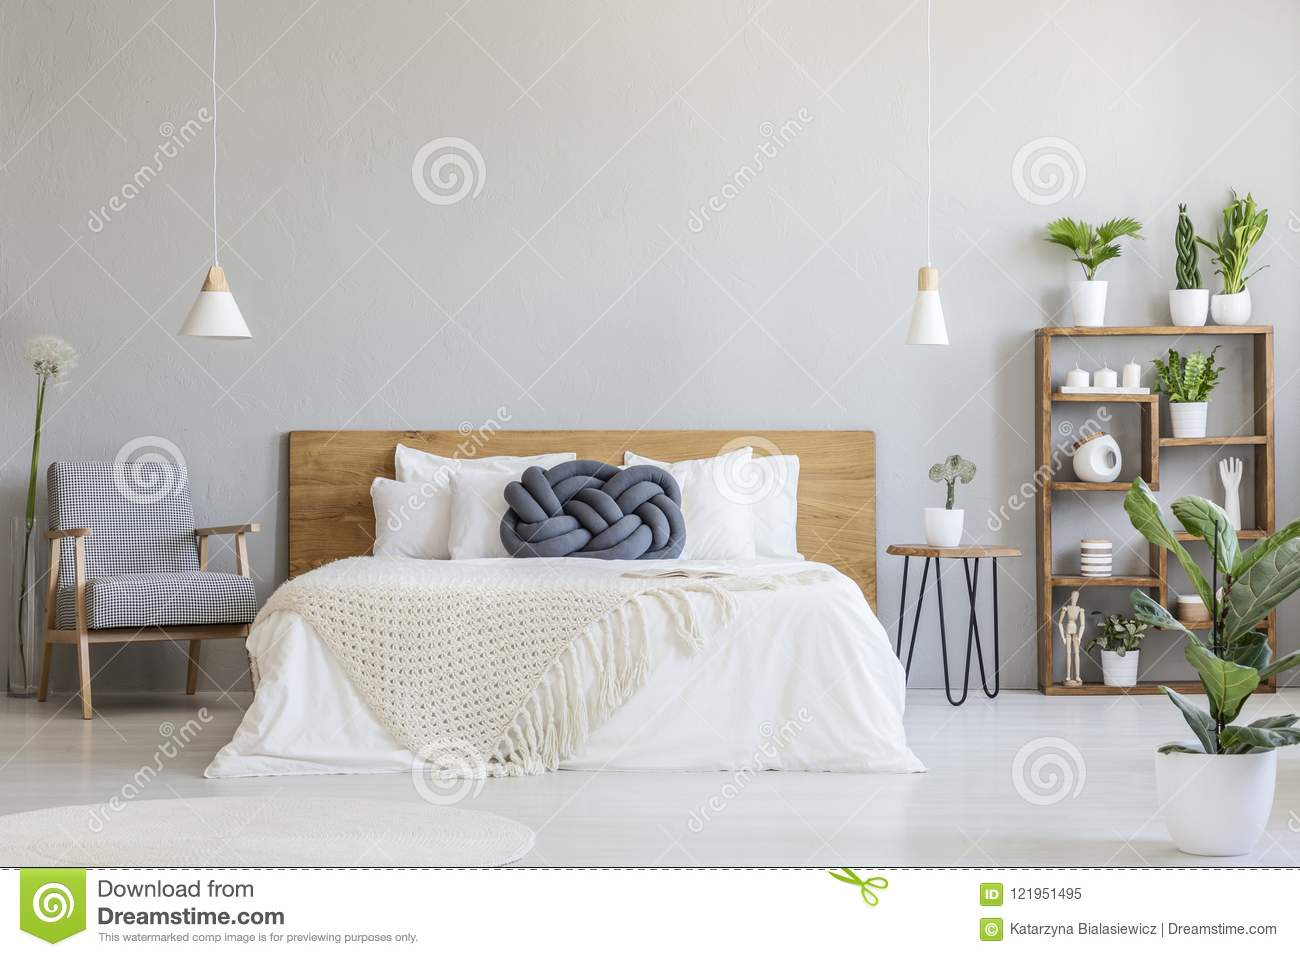 531 468 Bedroom Photos Free Royalty Free Stock Photos From Dreamstime